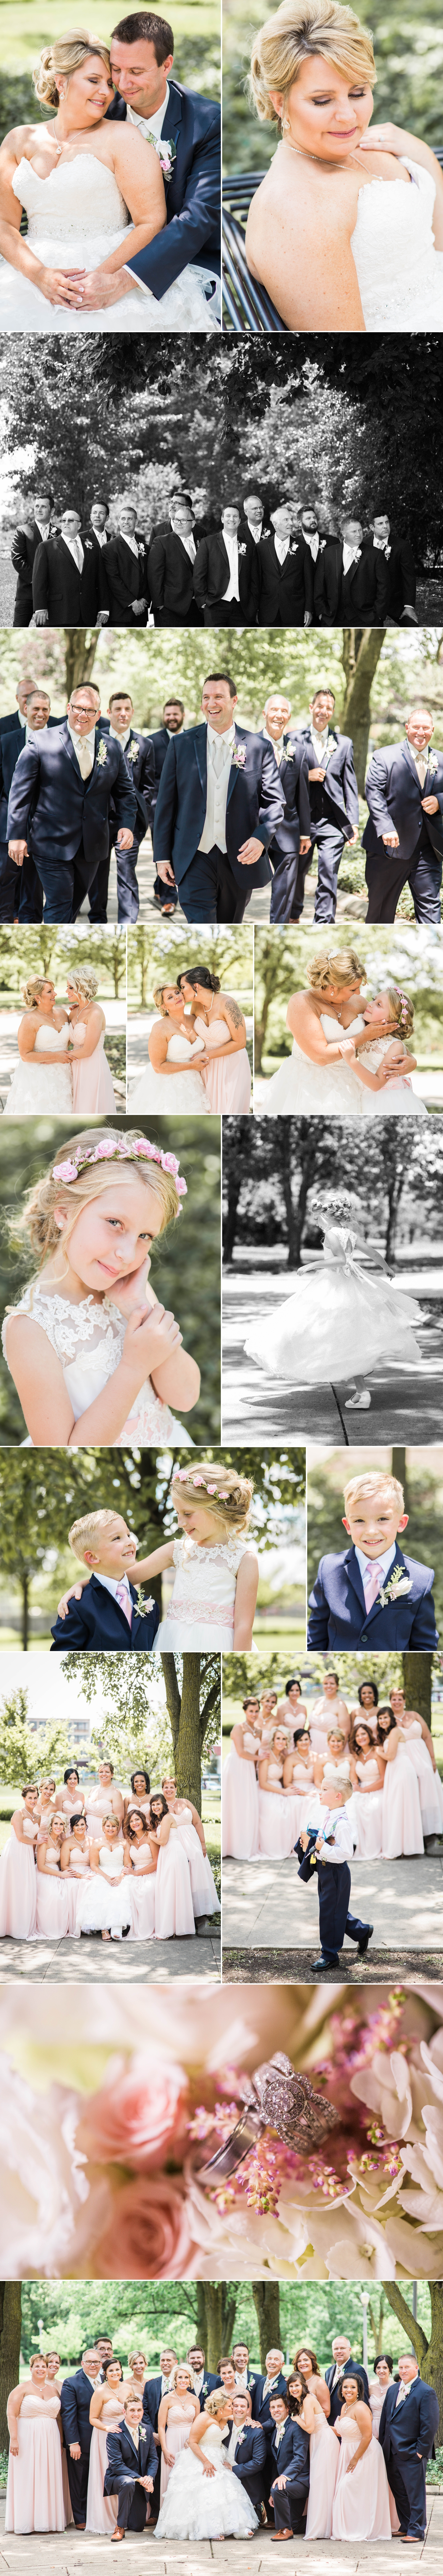 flower girl-wedding party-wedding day-wedding-park-downtown-bride-first look-groom-wedding dress-love